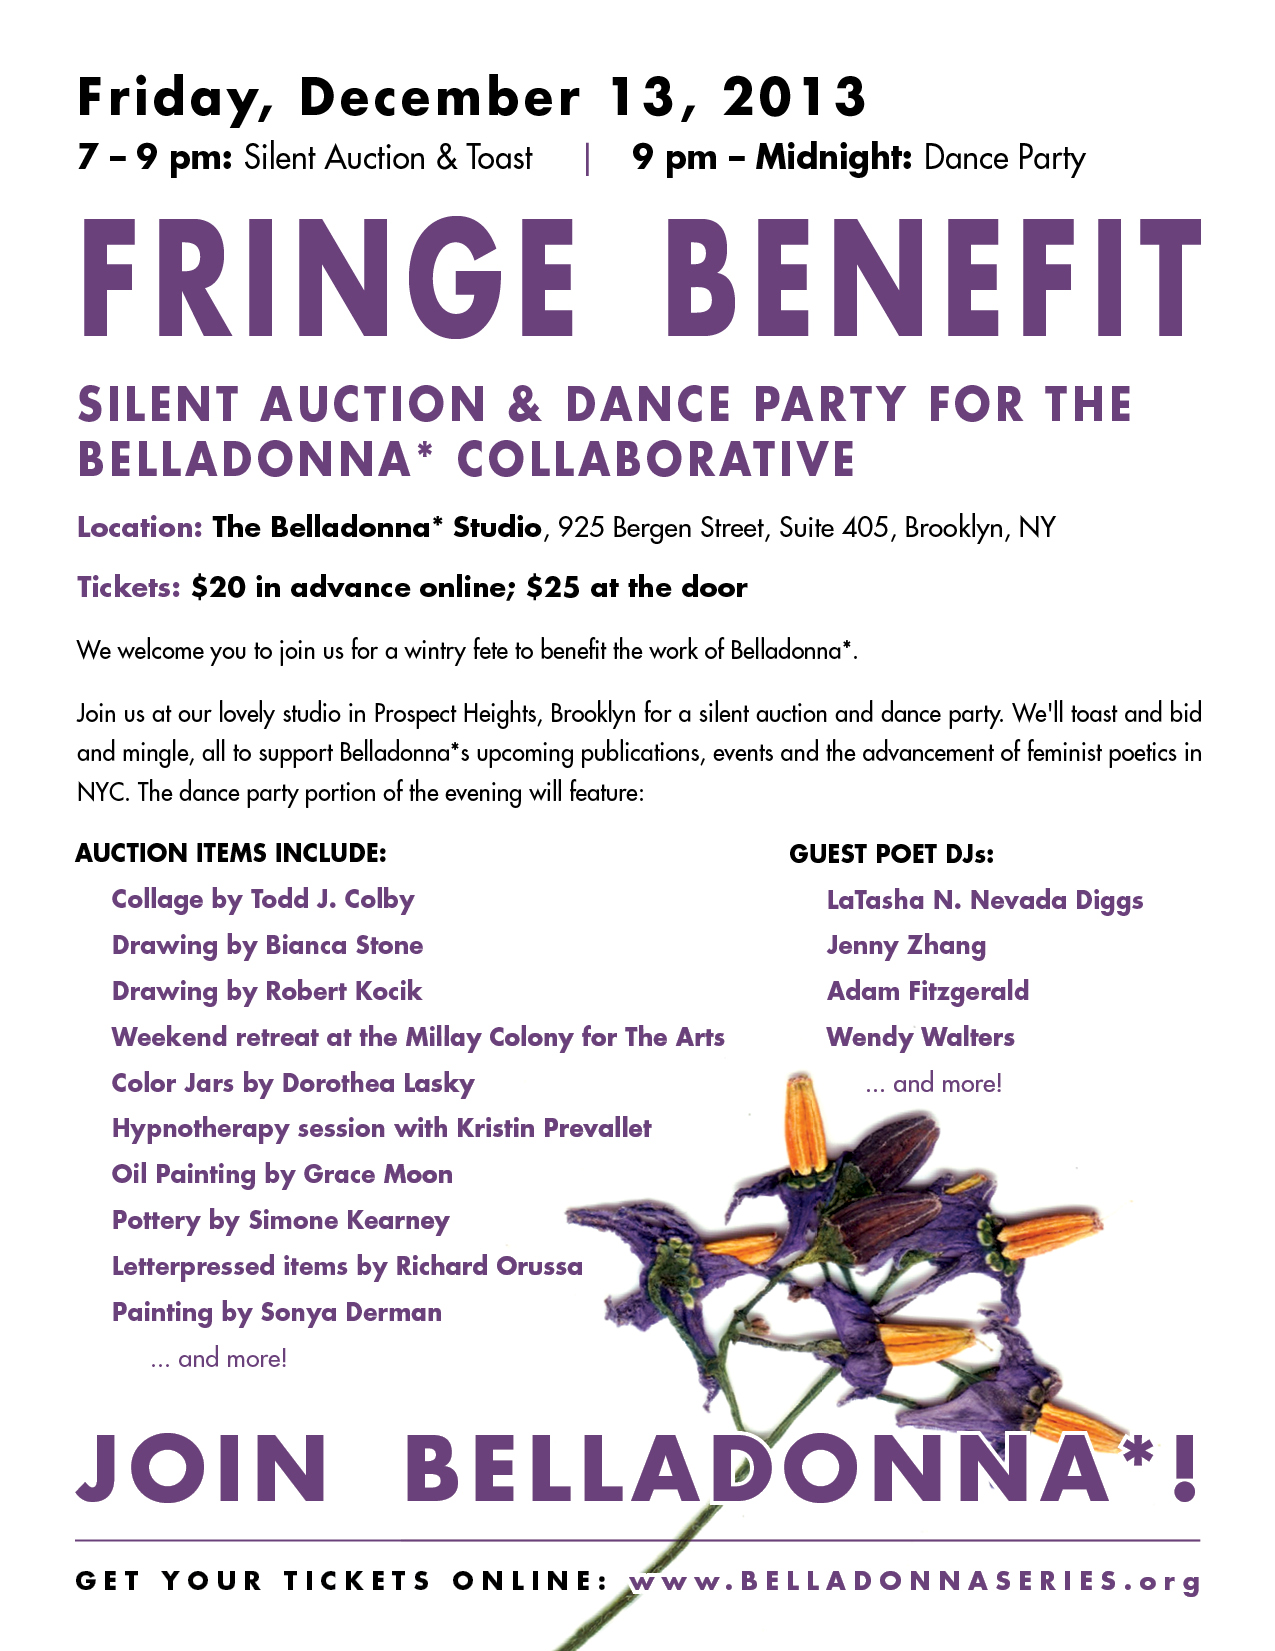 Fringe Benefit: A Silent Auction & Dance Party for the Belladonna* Collaborative